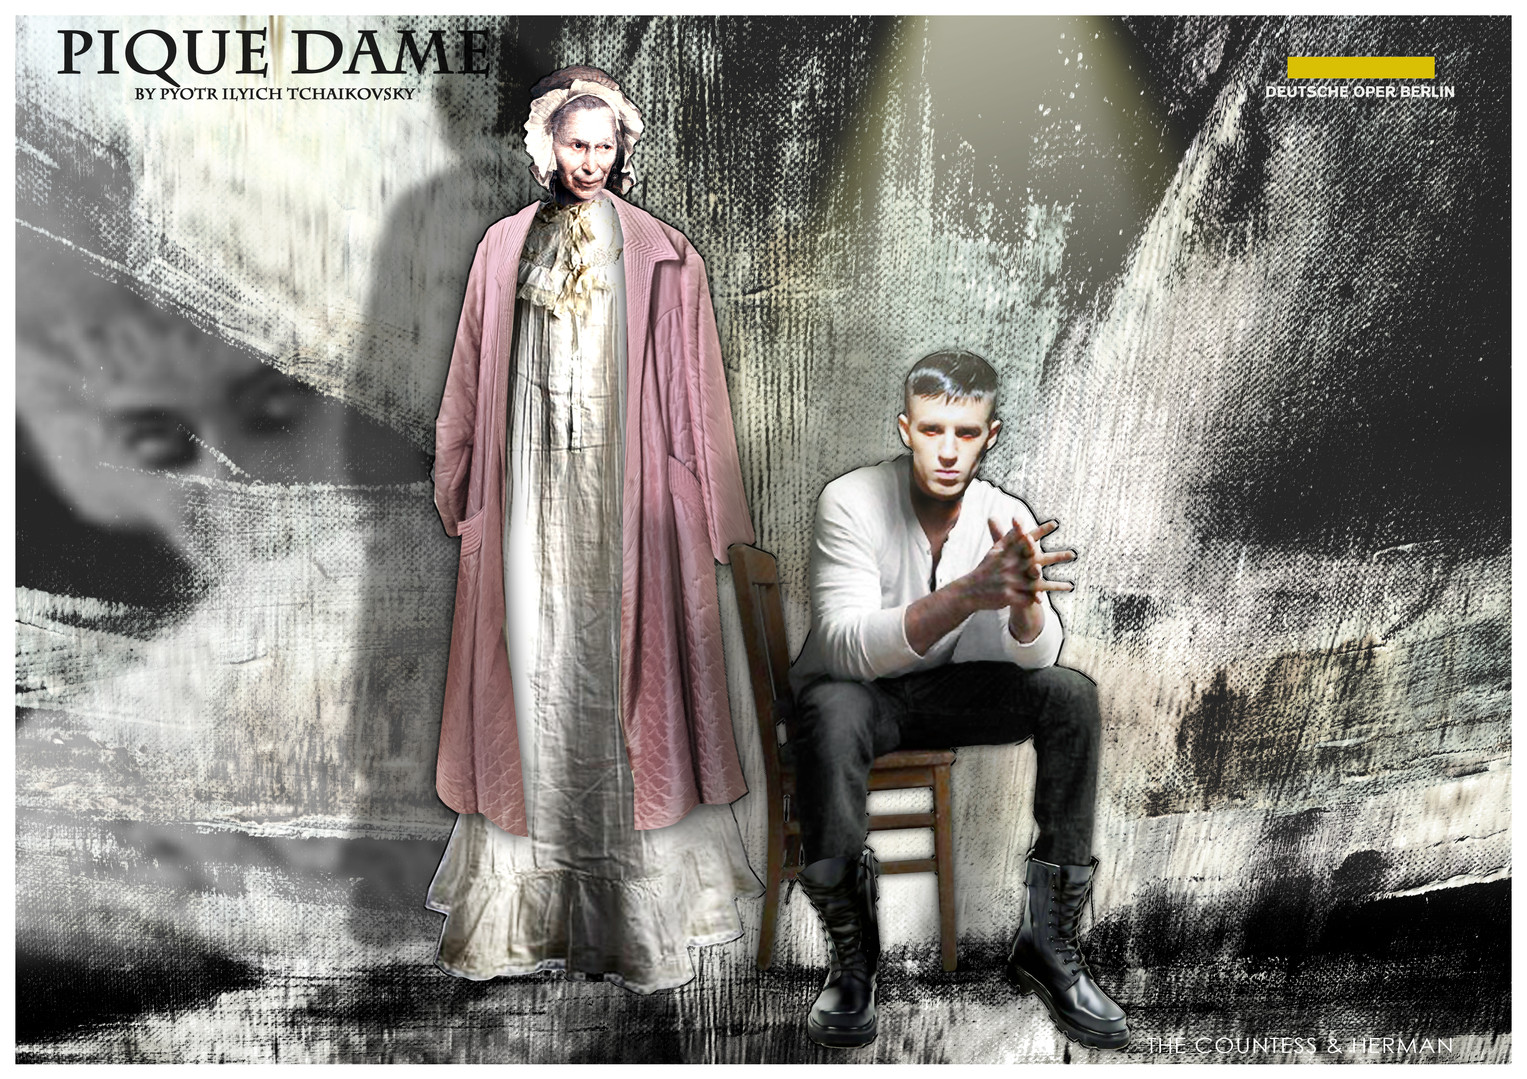 PIQUE DAME_Costume_THE COUNTESS & HERMAN